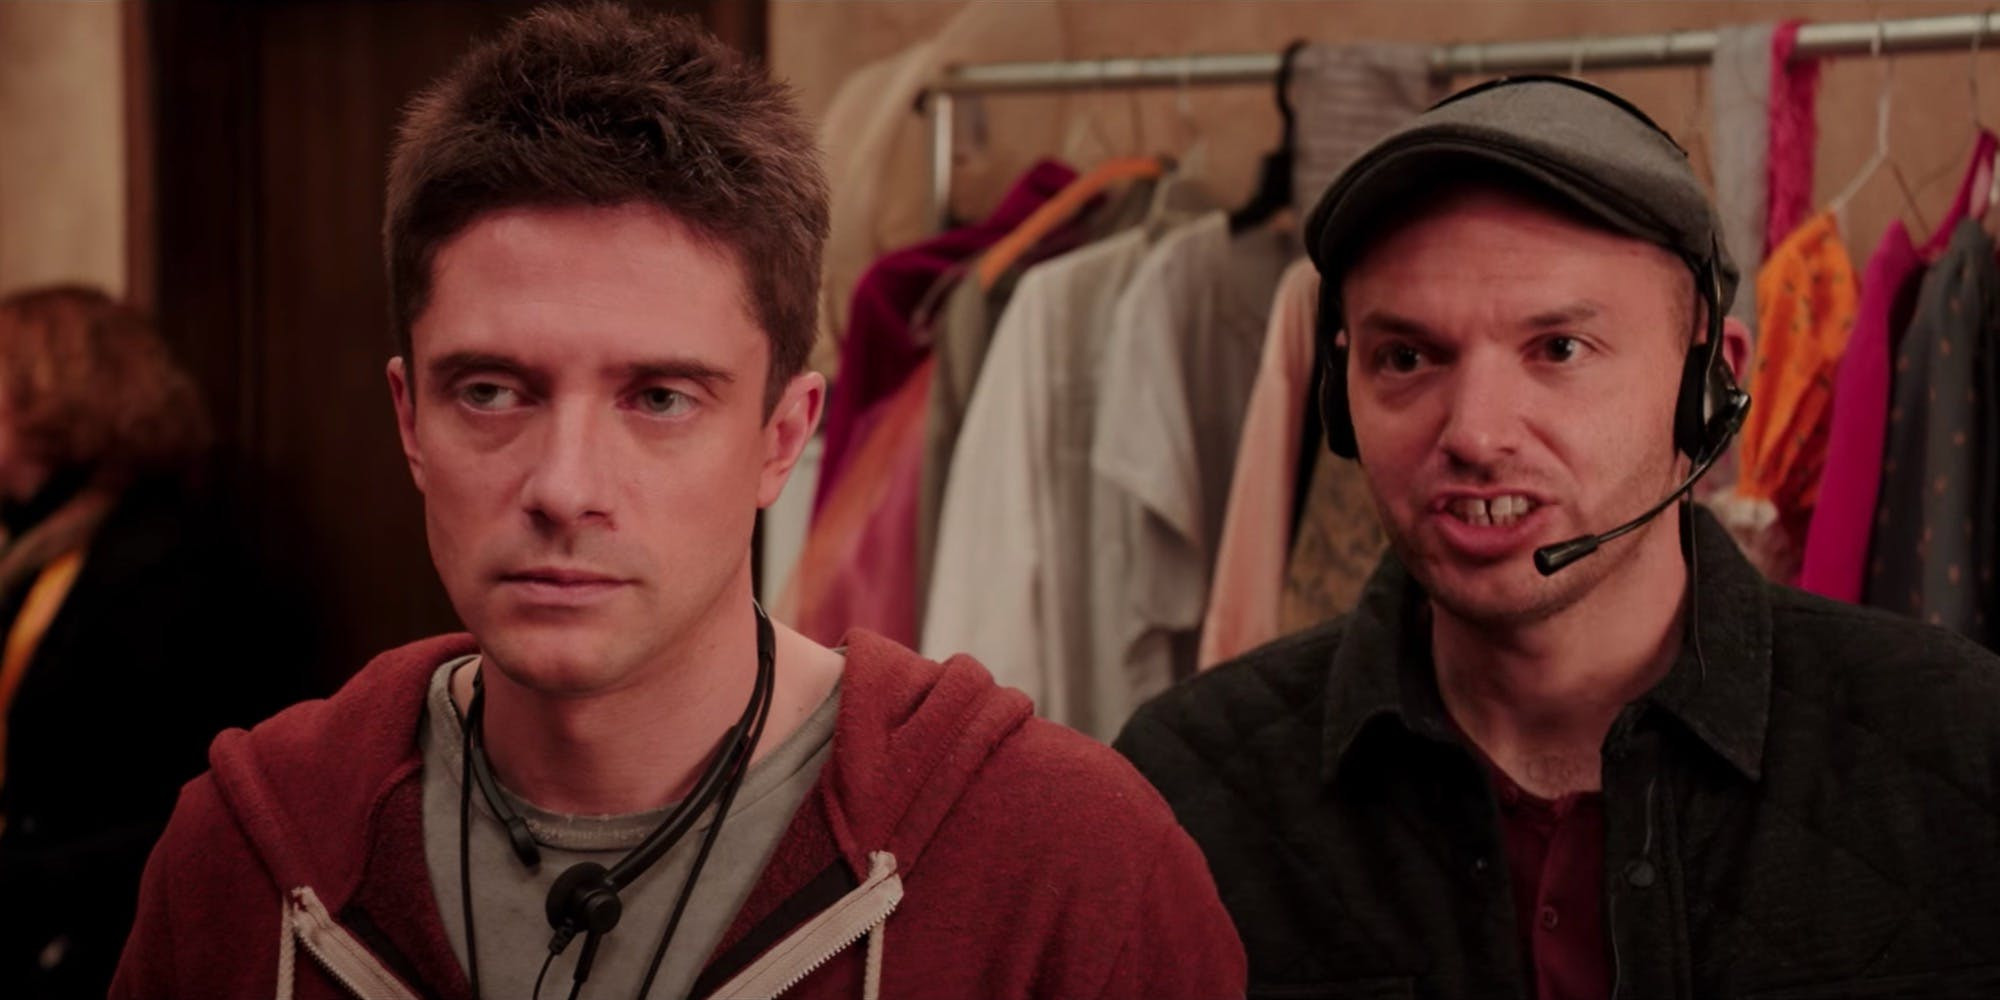 Topher Grace in the musical movie Opening Night, streaming on Netflix.